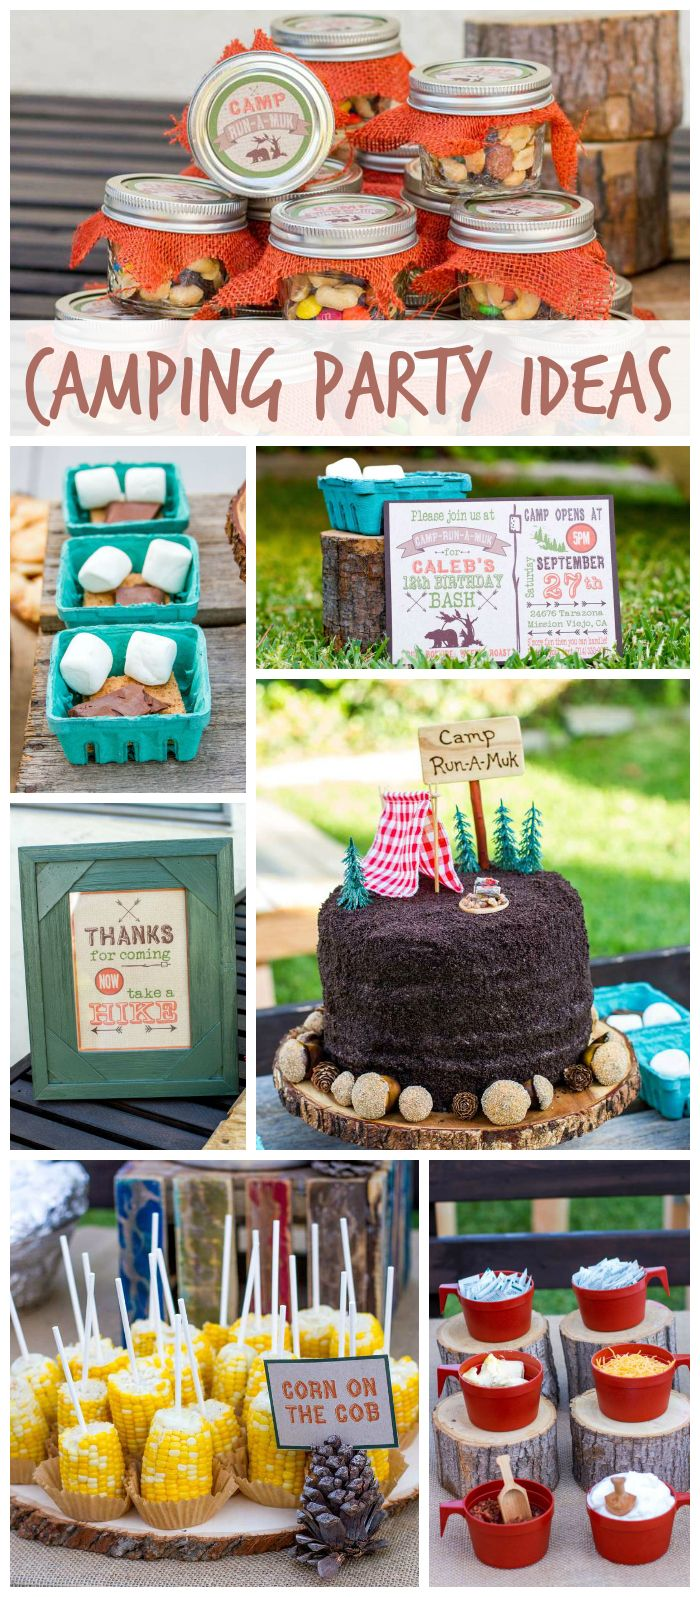 A Backyard Camping Boy Birthday Party With Fun Foods S Mores Mason Jars And Drink Station See More Planning Ideas At Catchmyparty